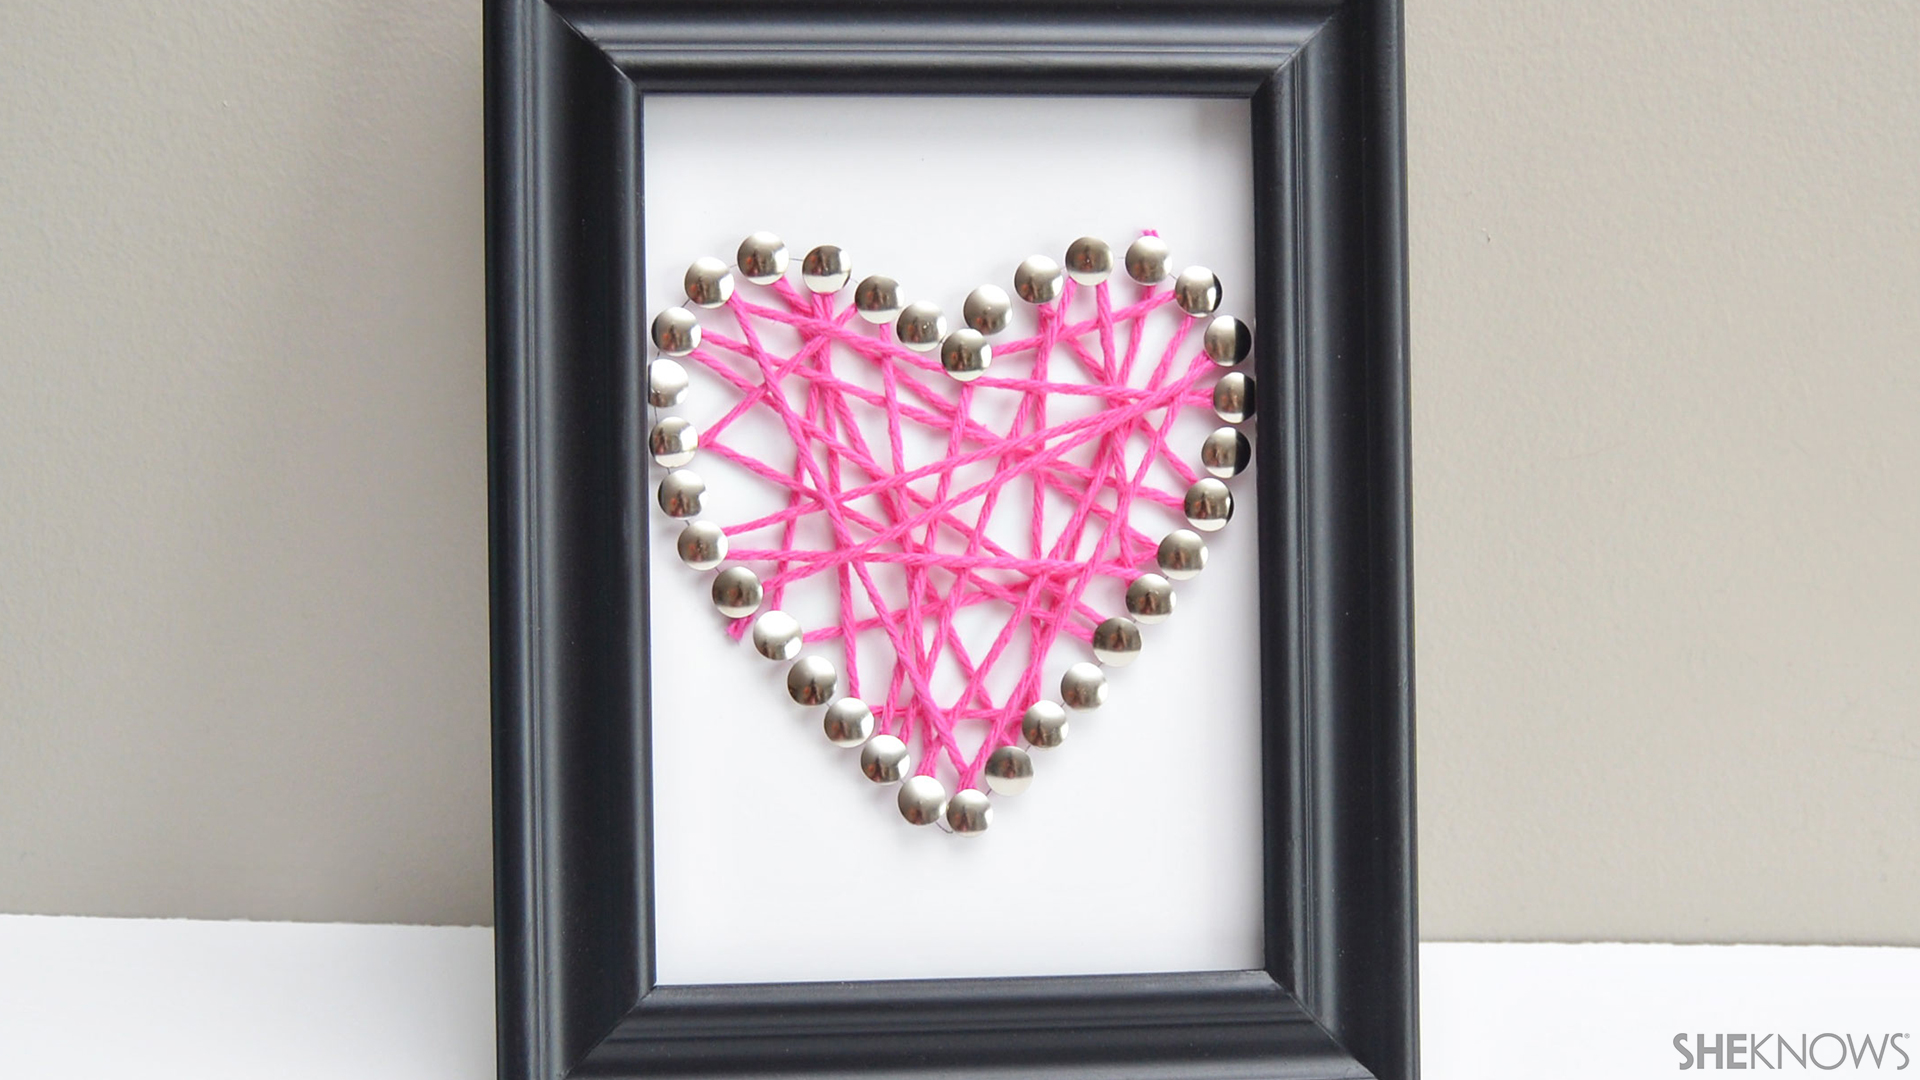 Push pin string art | Sheknows.com